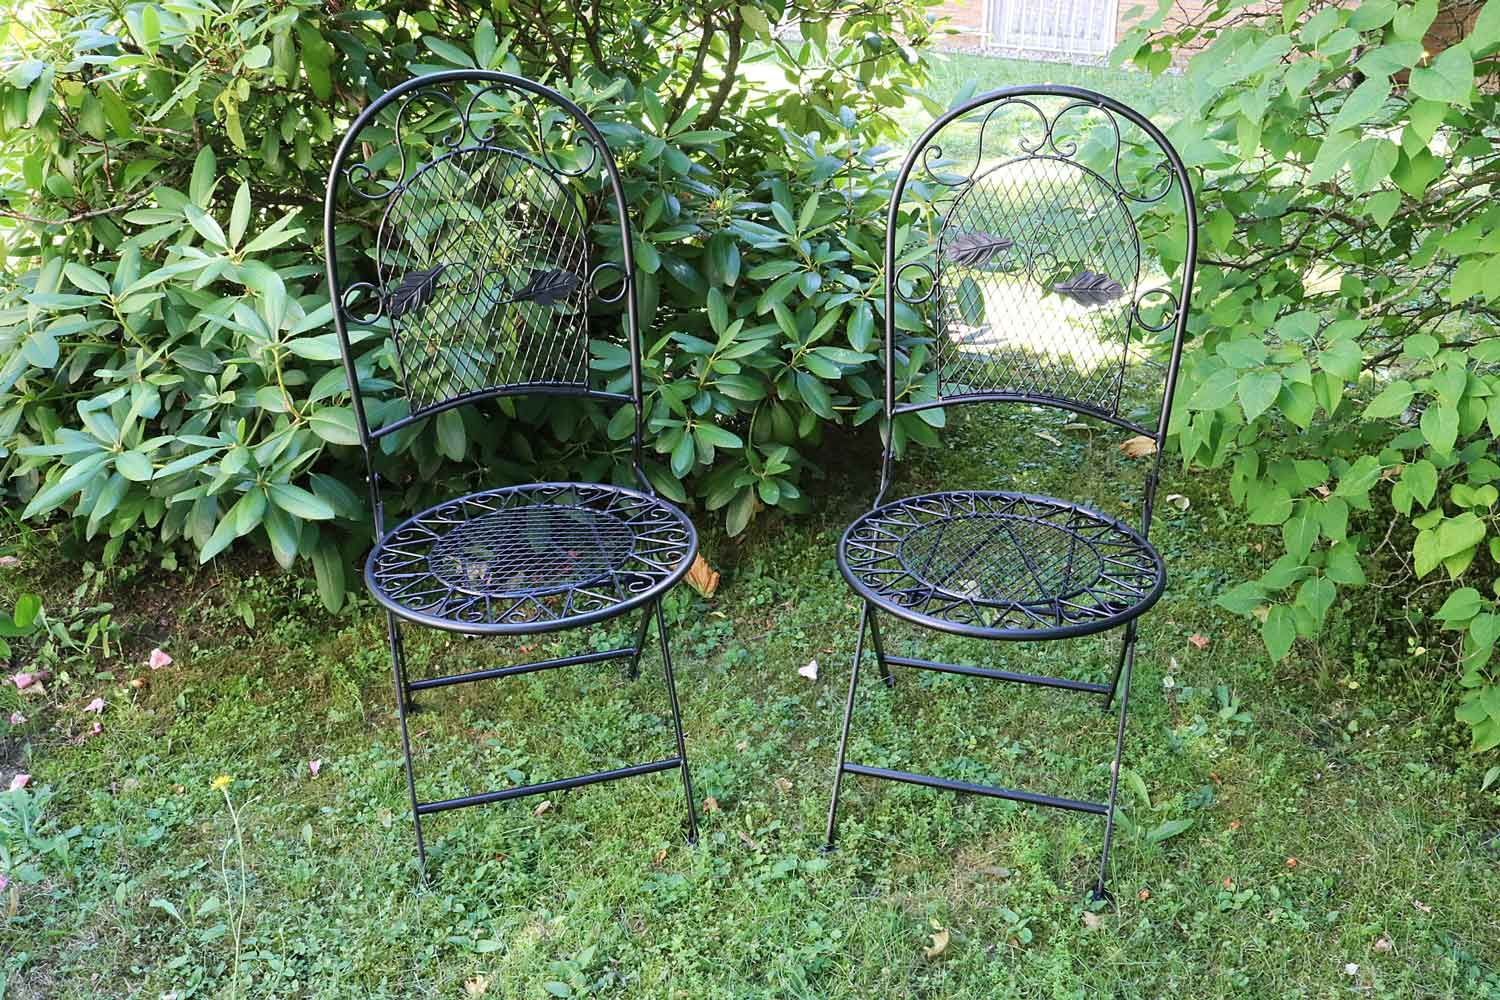 2x gartenstuhl eisen stuhl klappstuhl antik stil metall schwarz bistro garten ebay. Black Bedroom Furniture Sets. Home Design Ideas